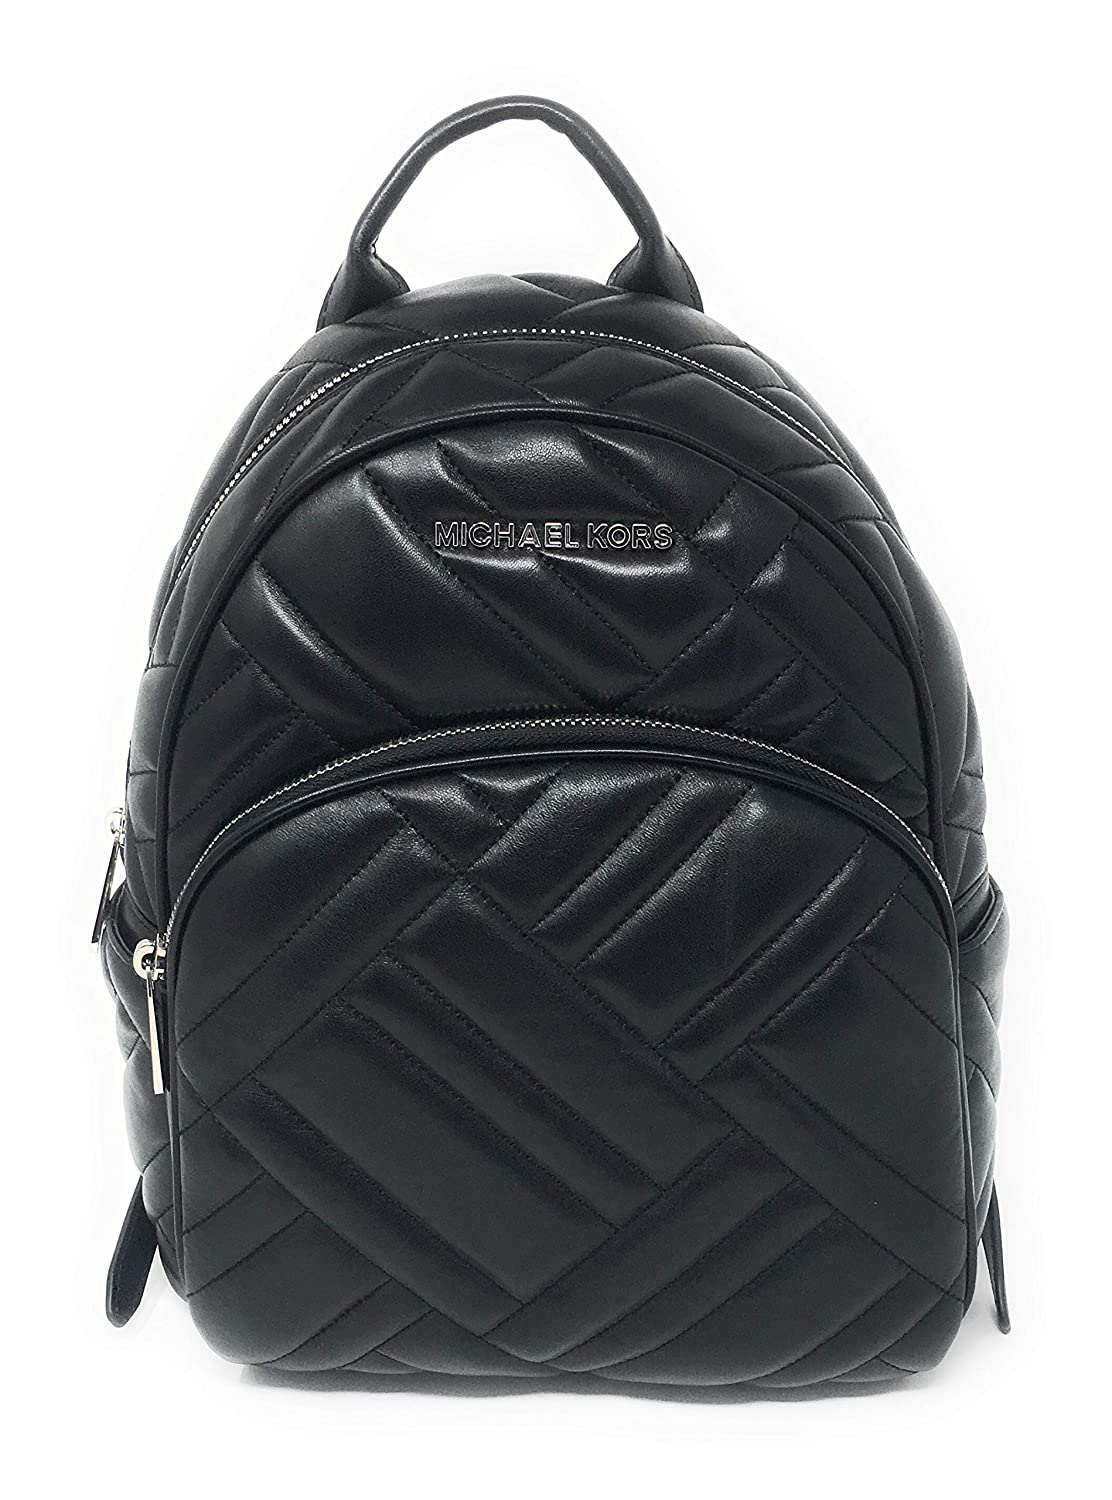 373769270b05 Amazon.com: Michael Kors Abbey Medium Chevron Quilted Leather Backpack Black:  Shoes